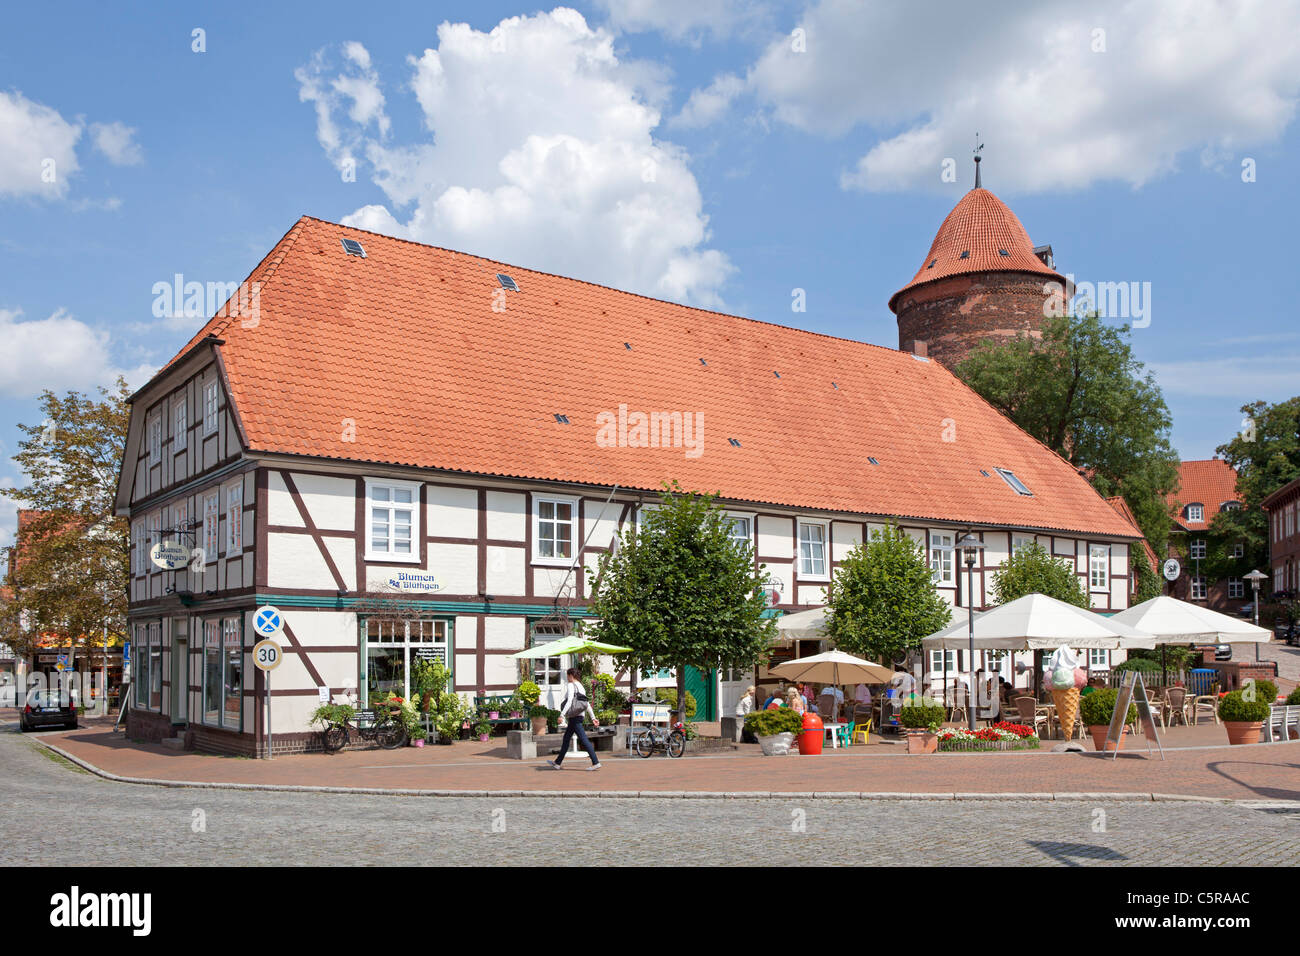 half-timbered house and Waldemar Tower, Dannenberg, Lower Saxony, Germany - Stock Image